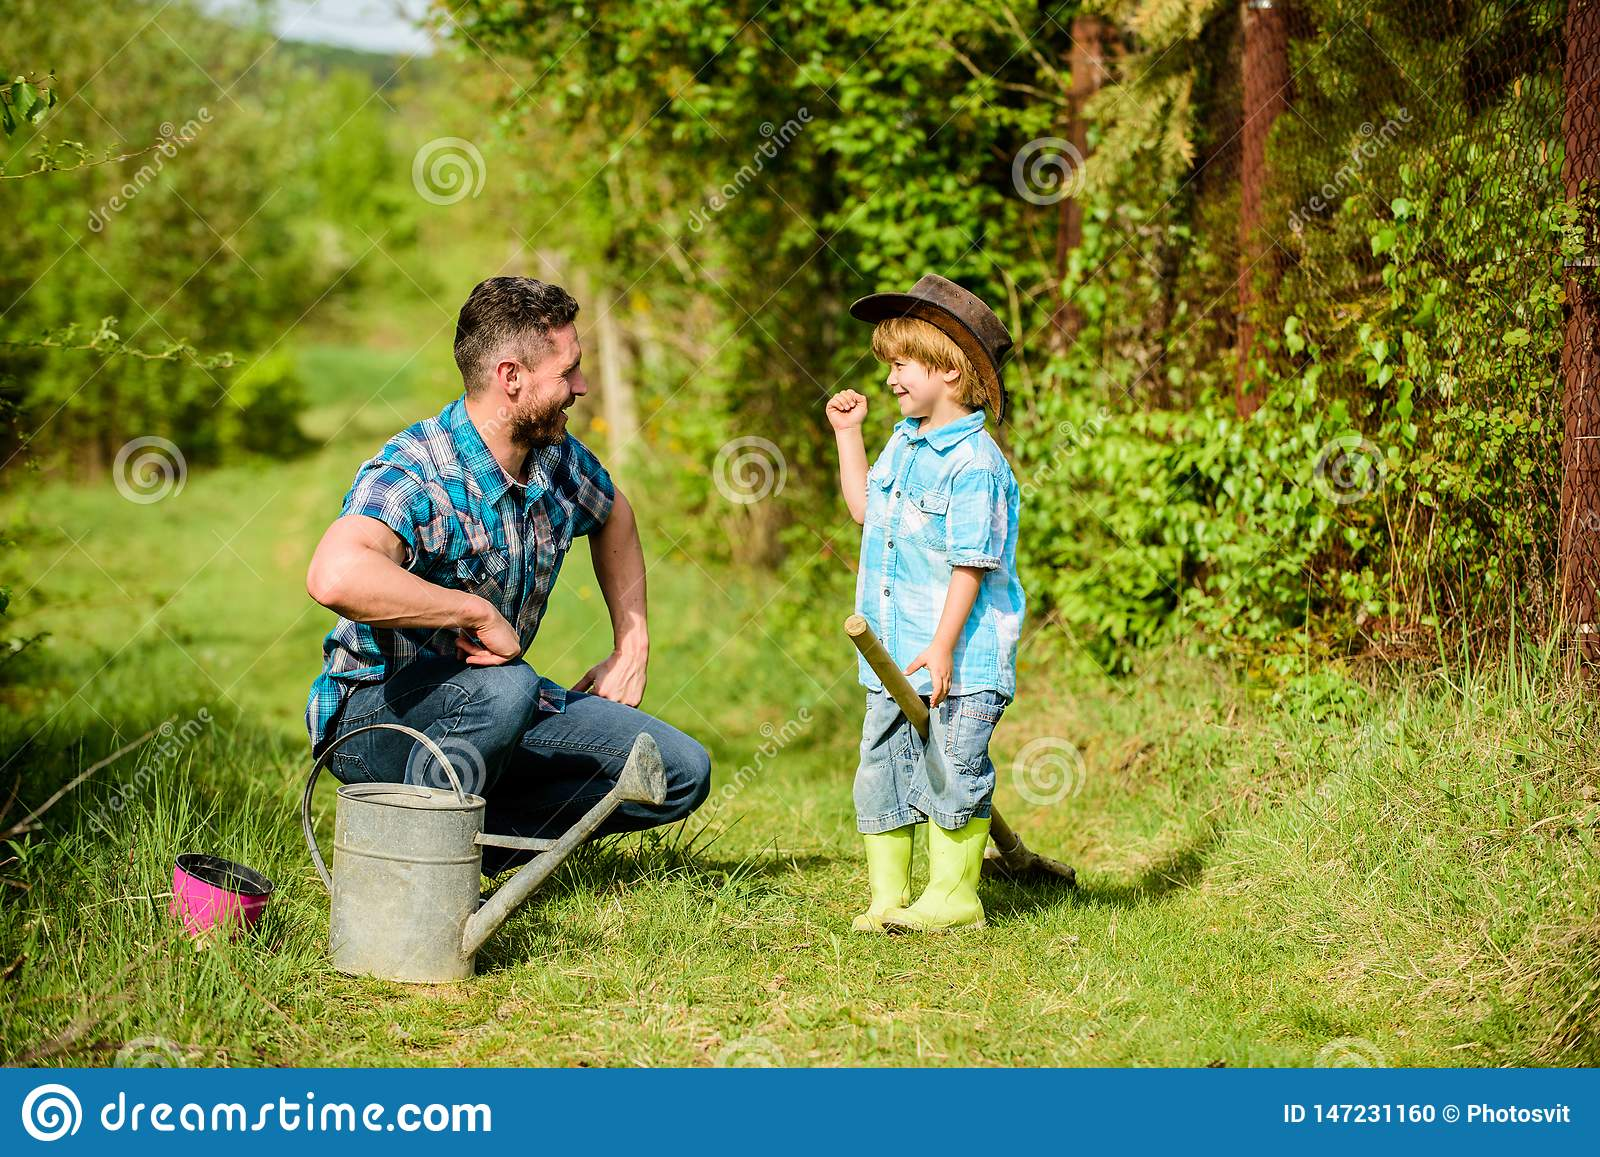 Little break. happy earth day. Family tree nursering. father and son in cowboy hat on ranch. watering can, pot and